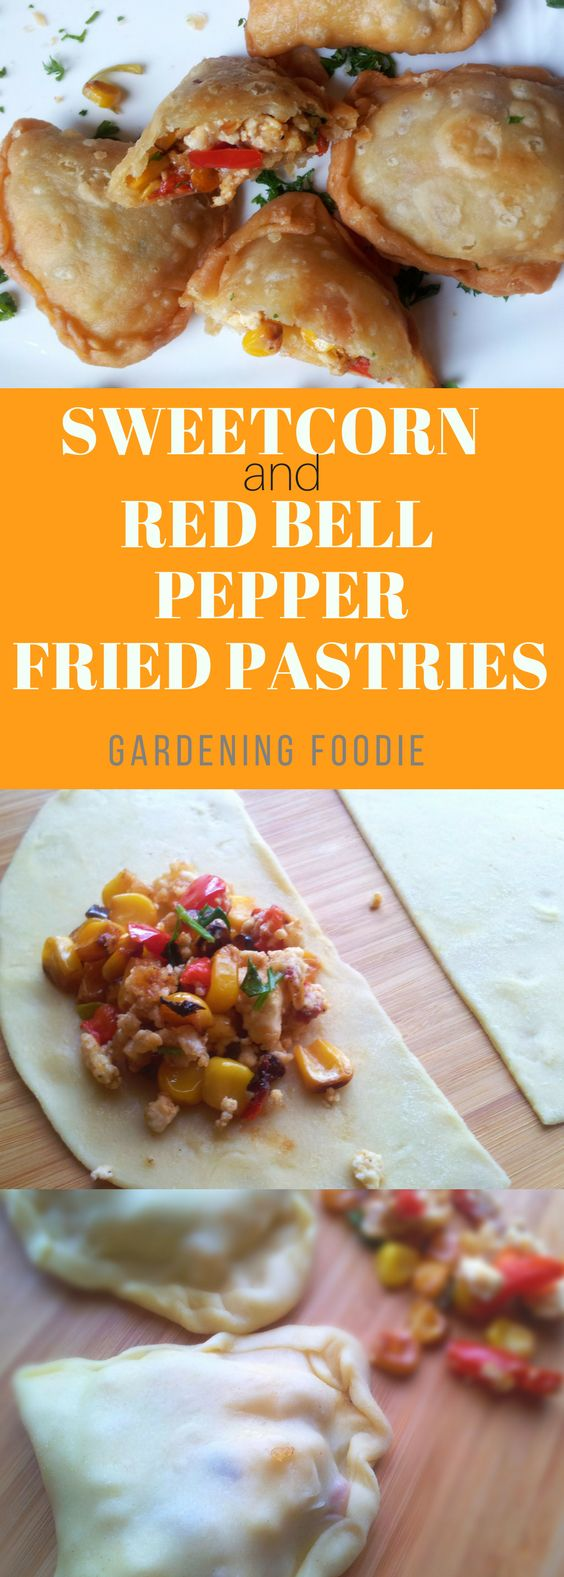 Sweetcorn and Red Bell Pepper Fried Pastries ⋆ Gardening Foodie